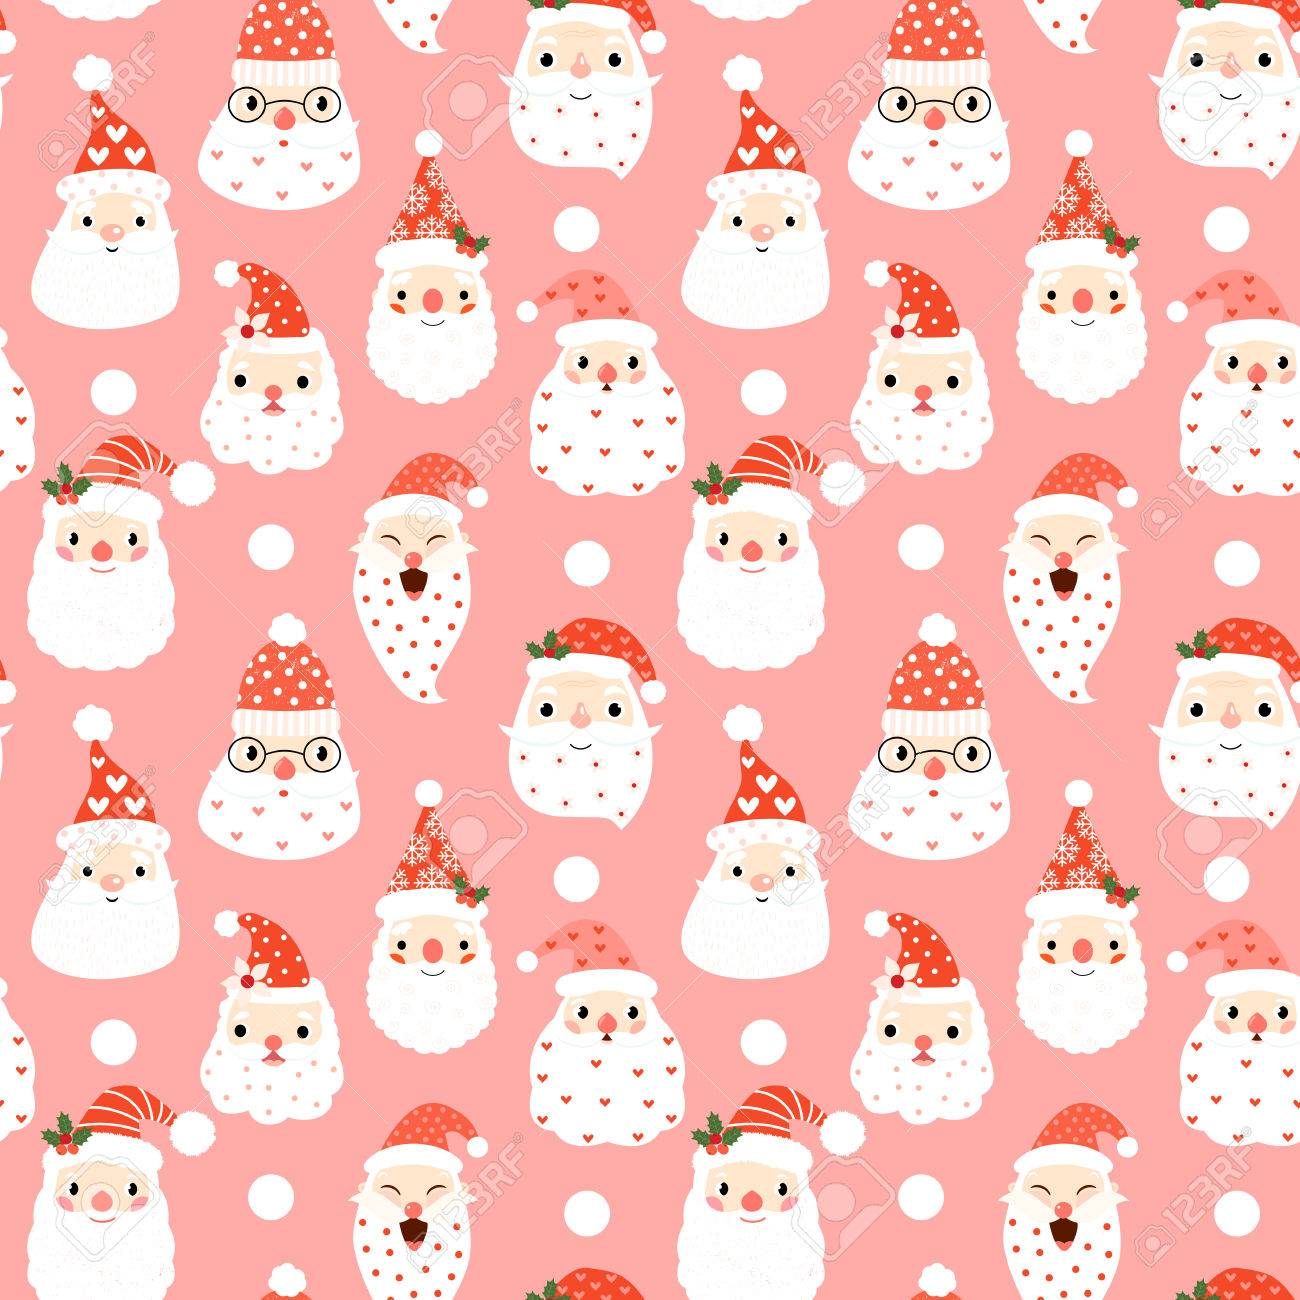 Christmas Designs.Cute Seamless Pattern With Hipster Santa Faces On Pink Background